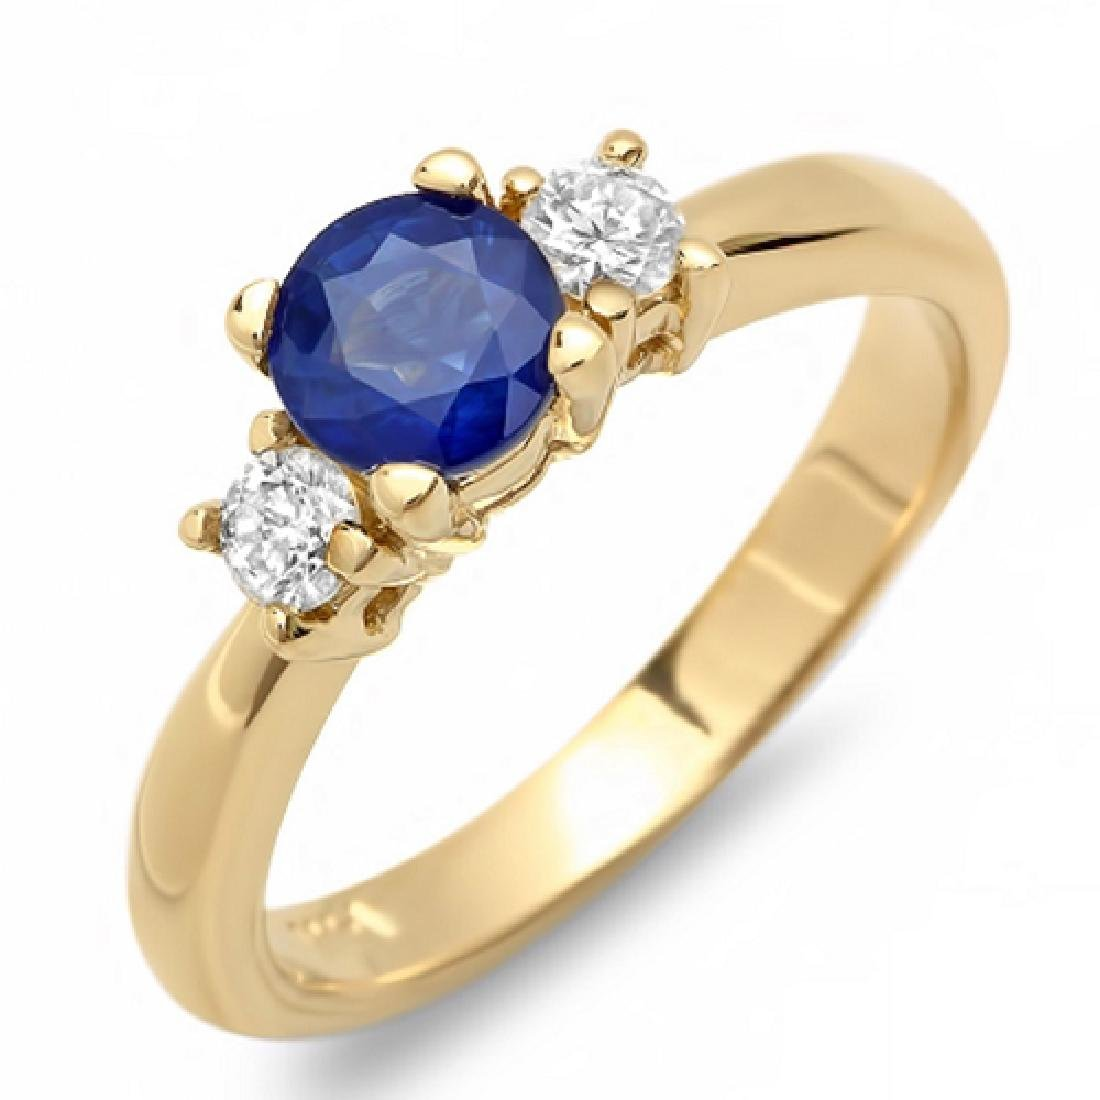 1.18 Carat Natural Sapphire 18K Solid Yellow Gold